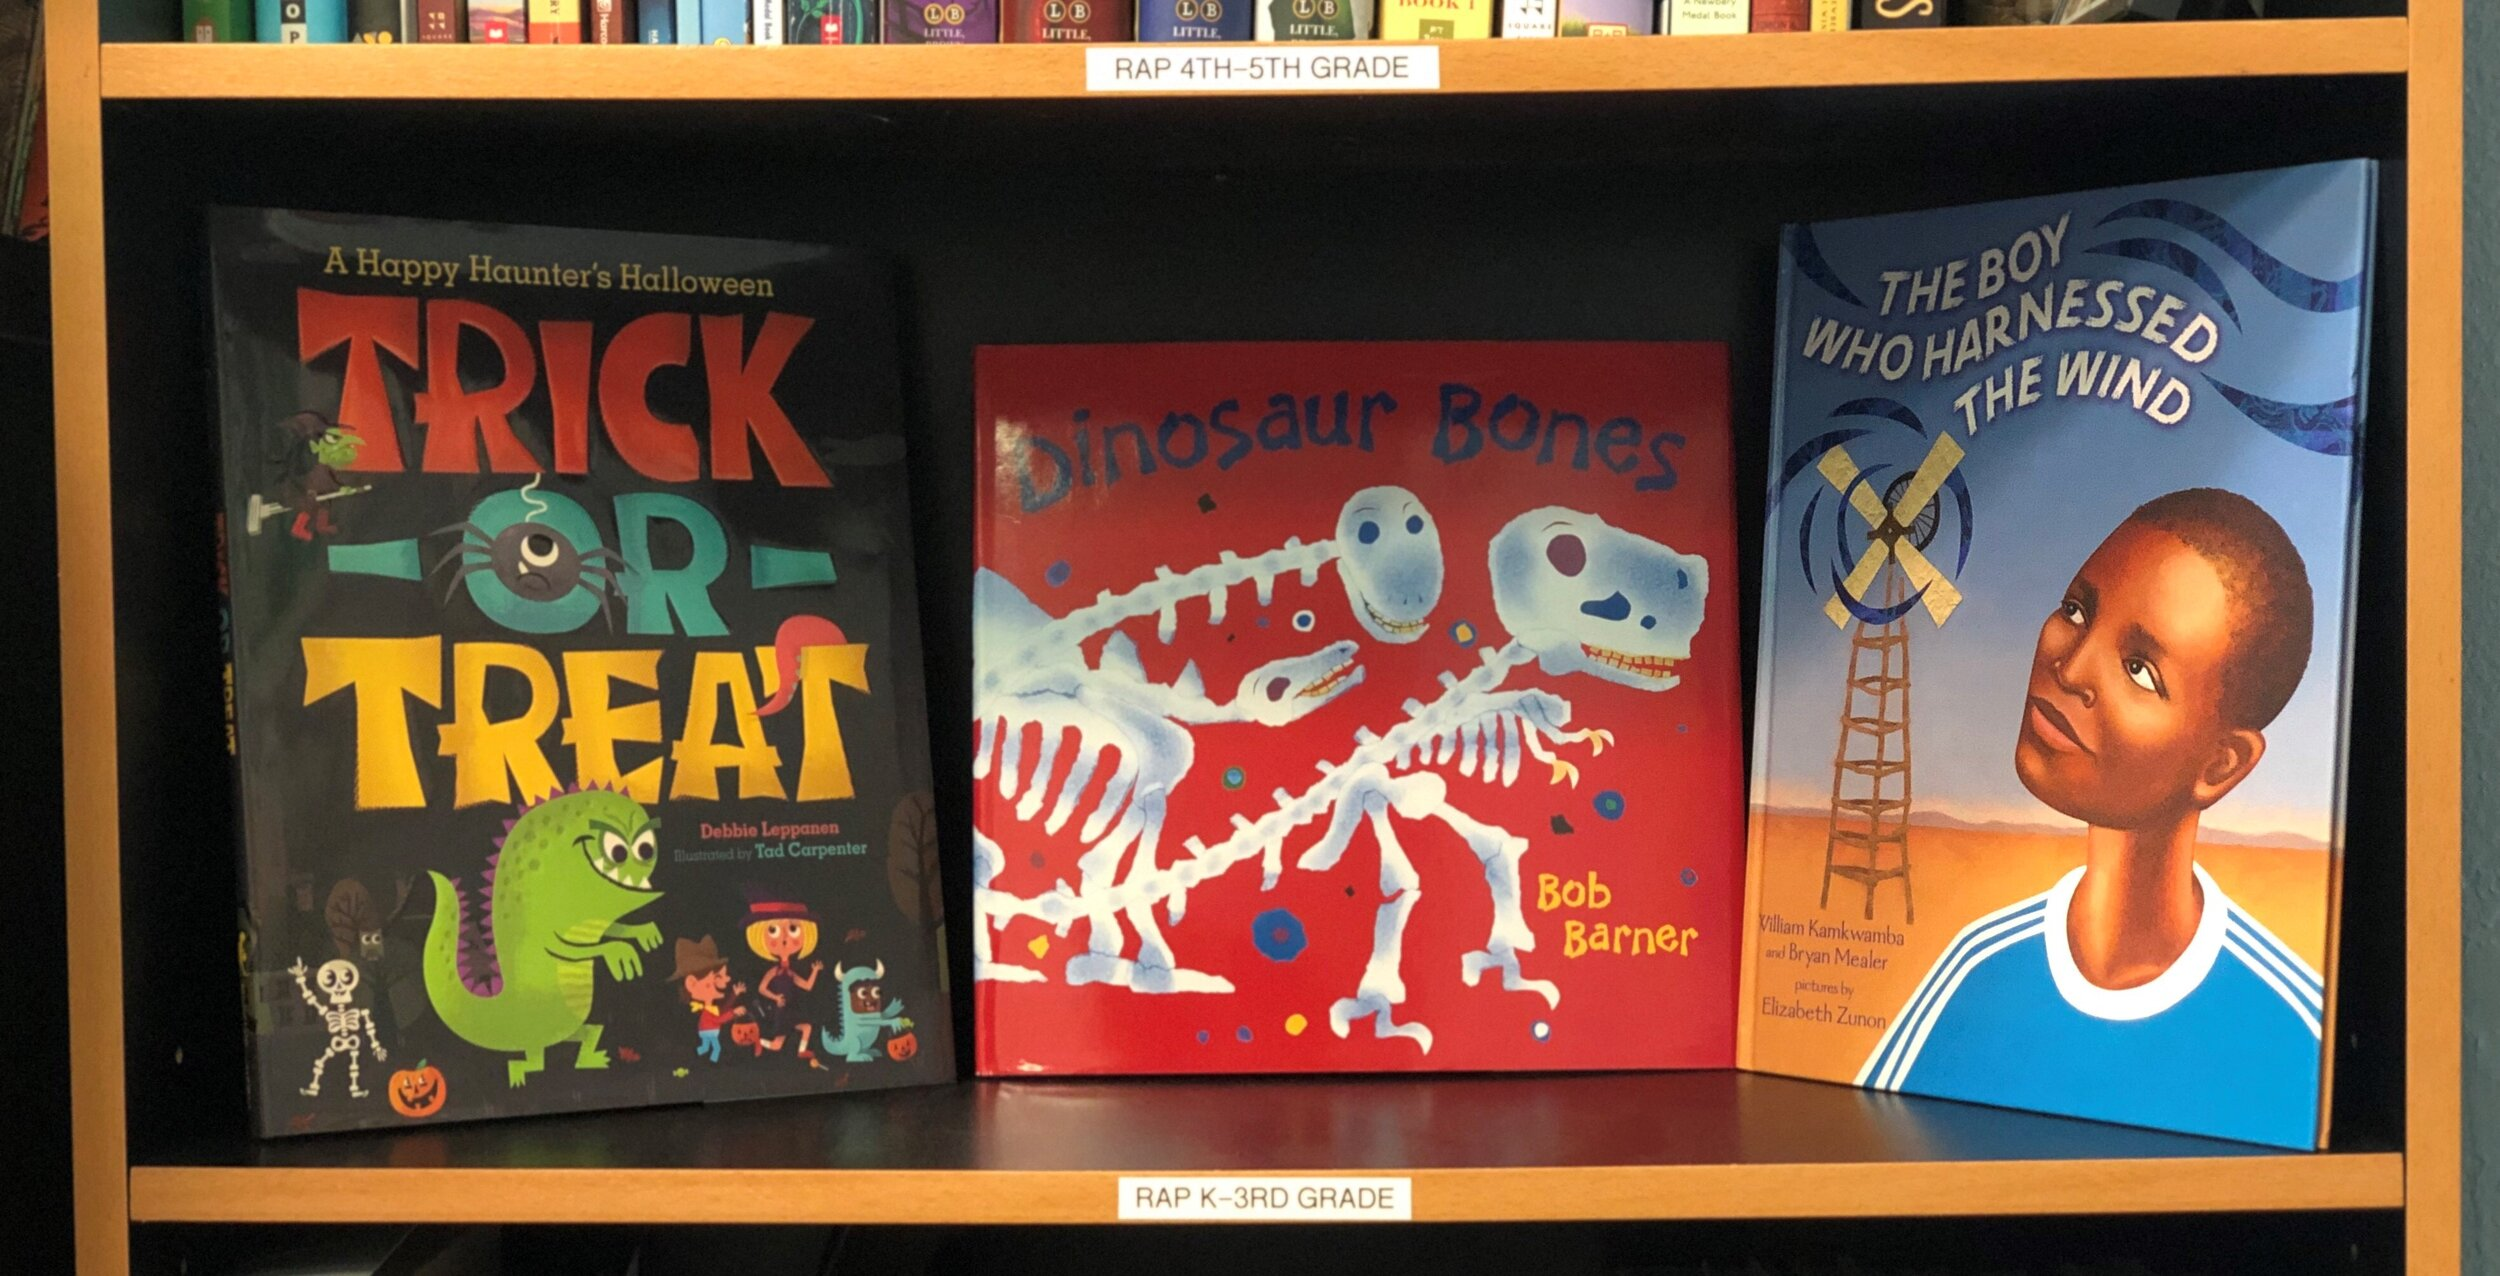 An image of three of our RAP books:  Trick-or-Treat: A Happy Hunter's Halloween, Dinosaur Bones,  and  The Boy Who Harnessed the Wind.